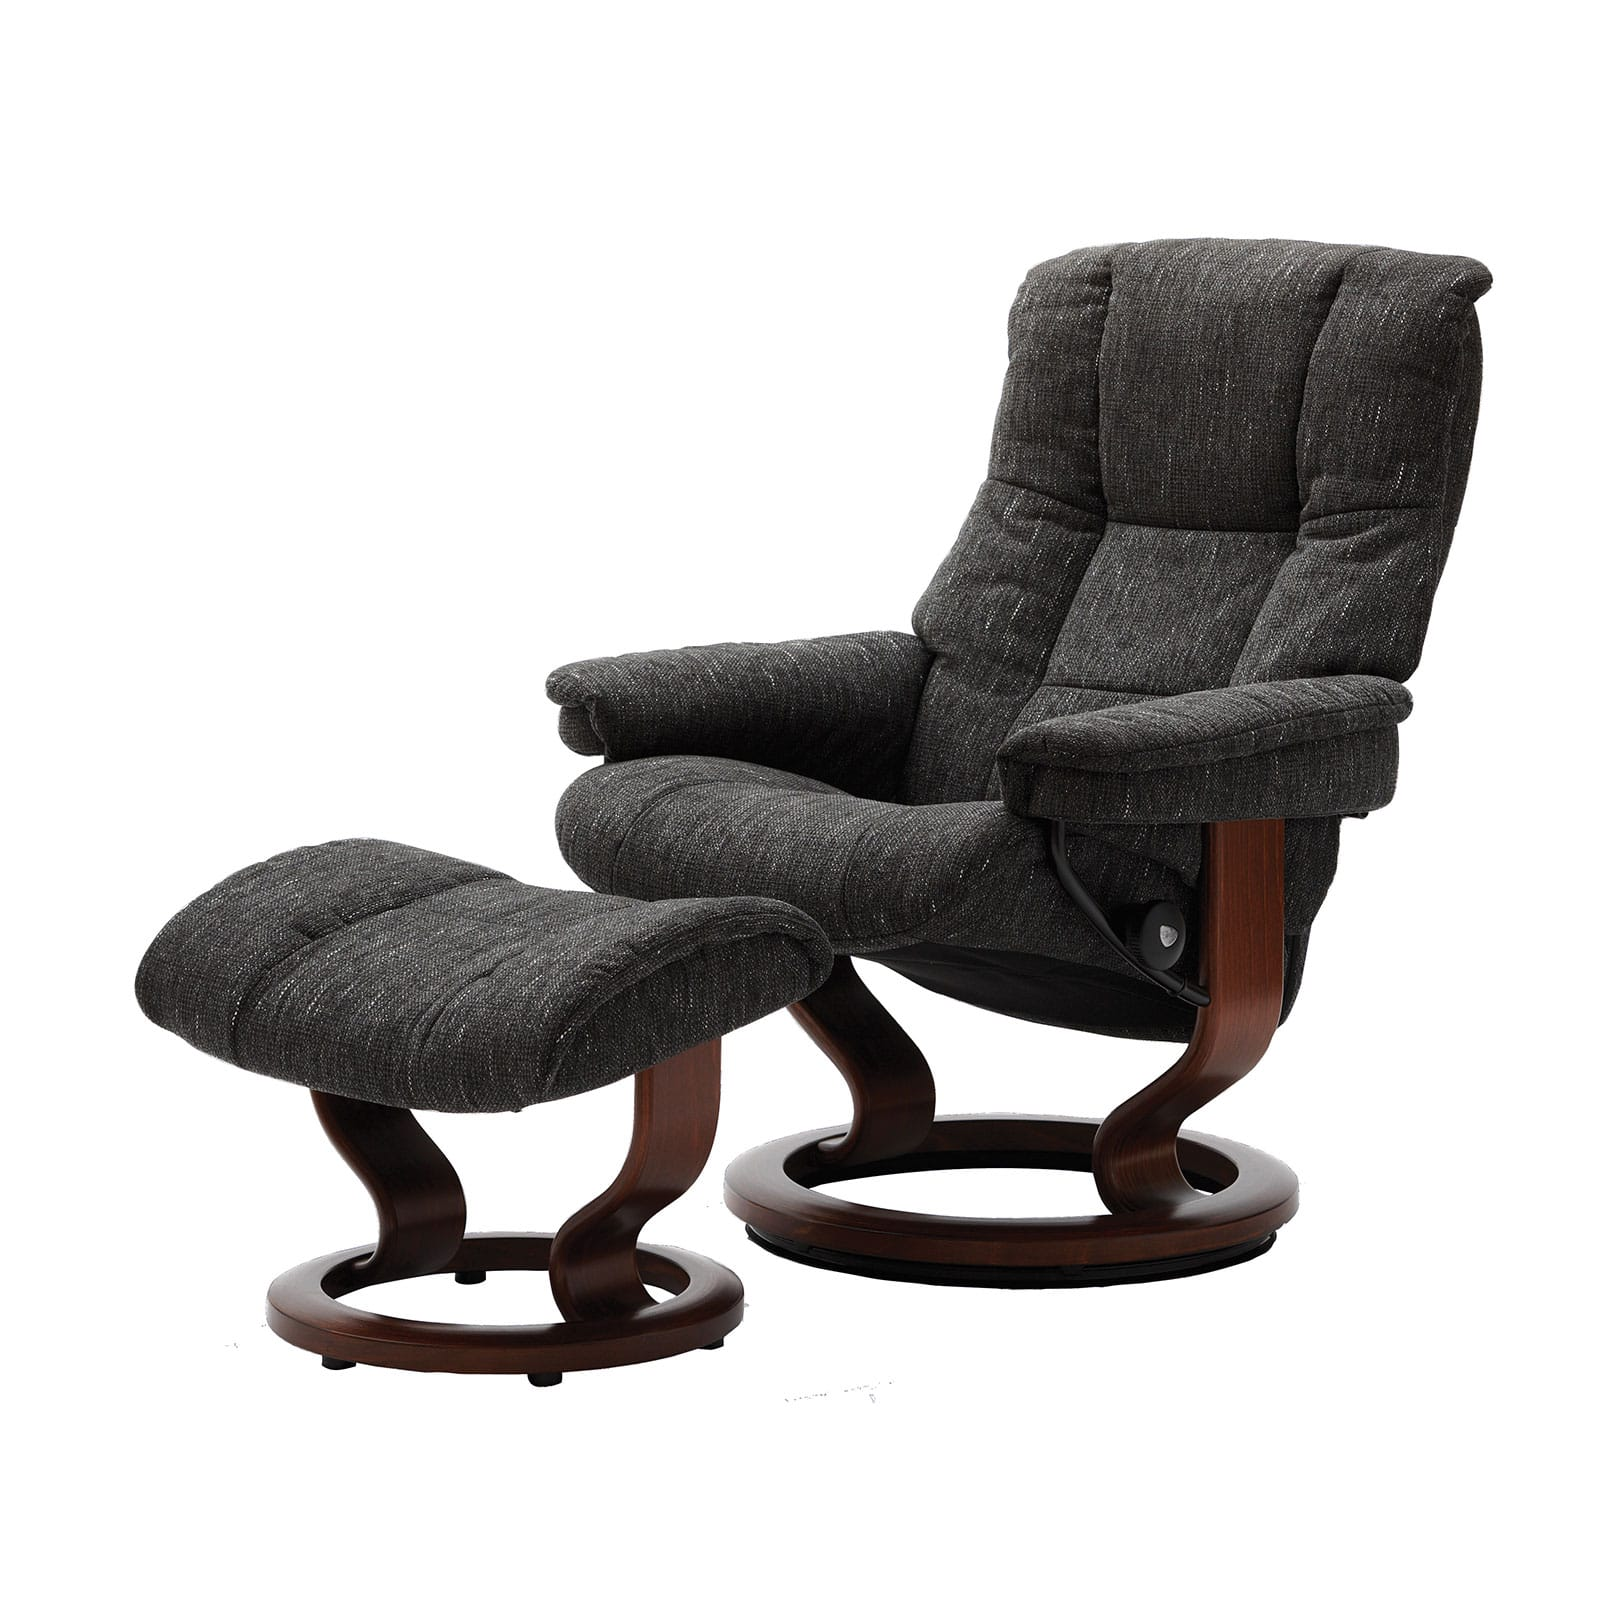 Relaxsessel Stoff Stressless Sessel Mayfair Stoff Karma Grey Mit Hocker